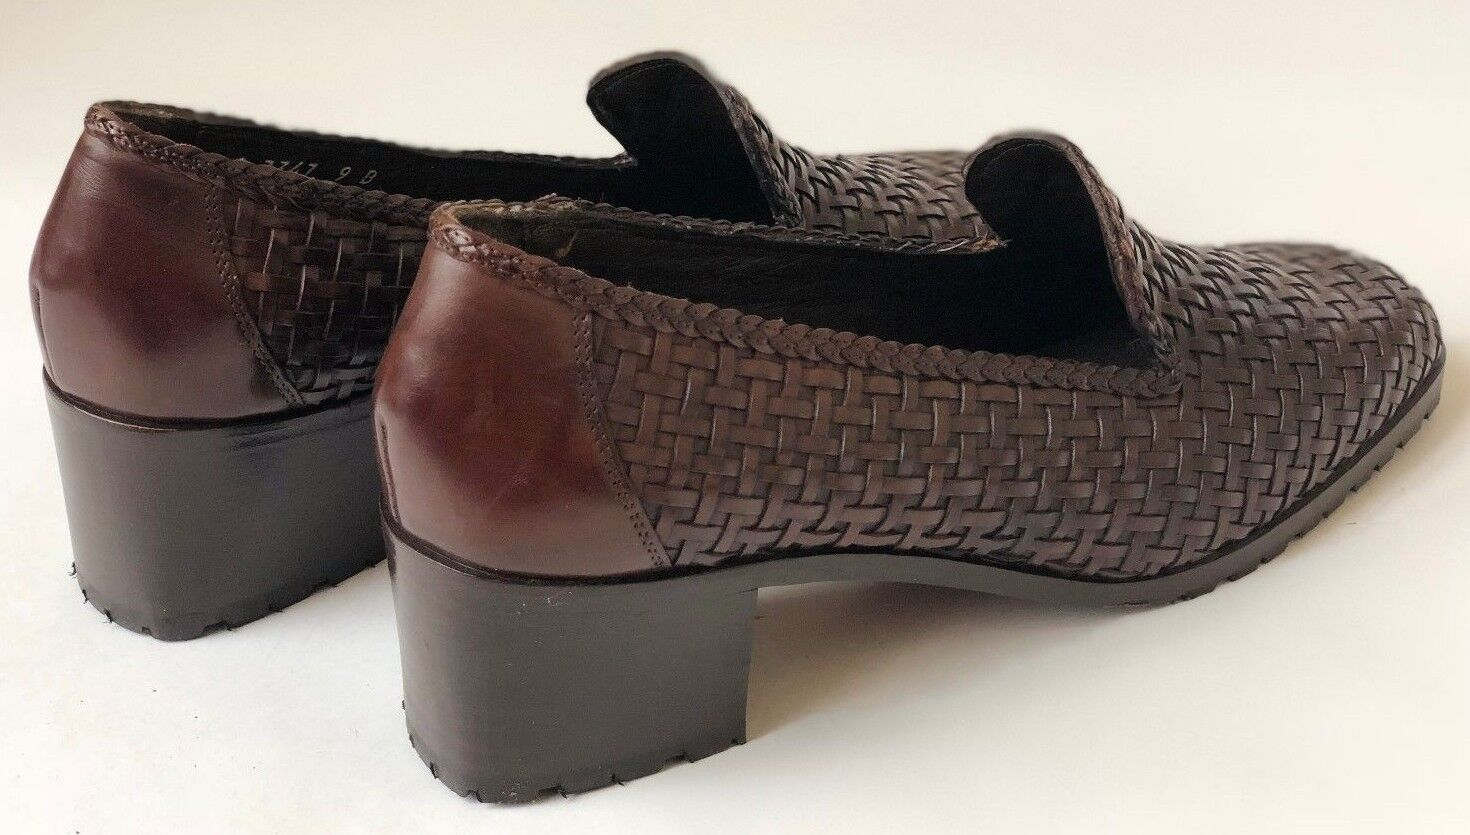 Cole Haan Vintage Basket Weave Leather Brogue Boots Boots Boots Size 9 US (2 Inch heel) fb29f5